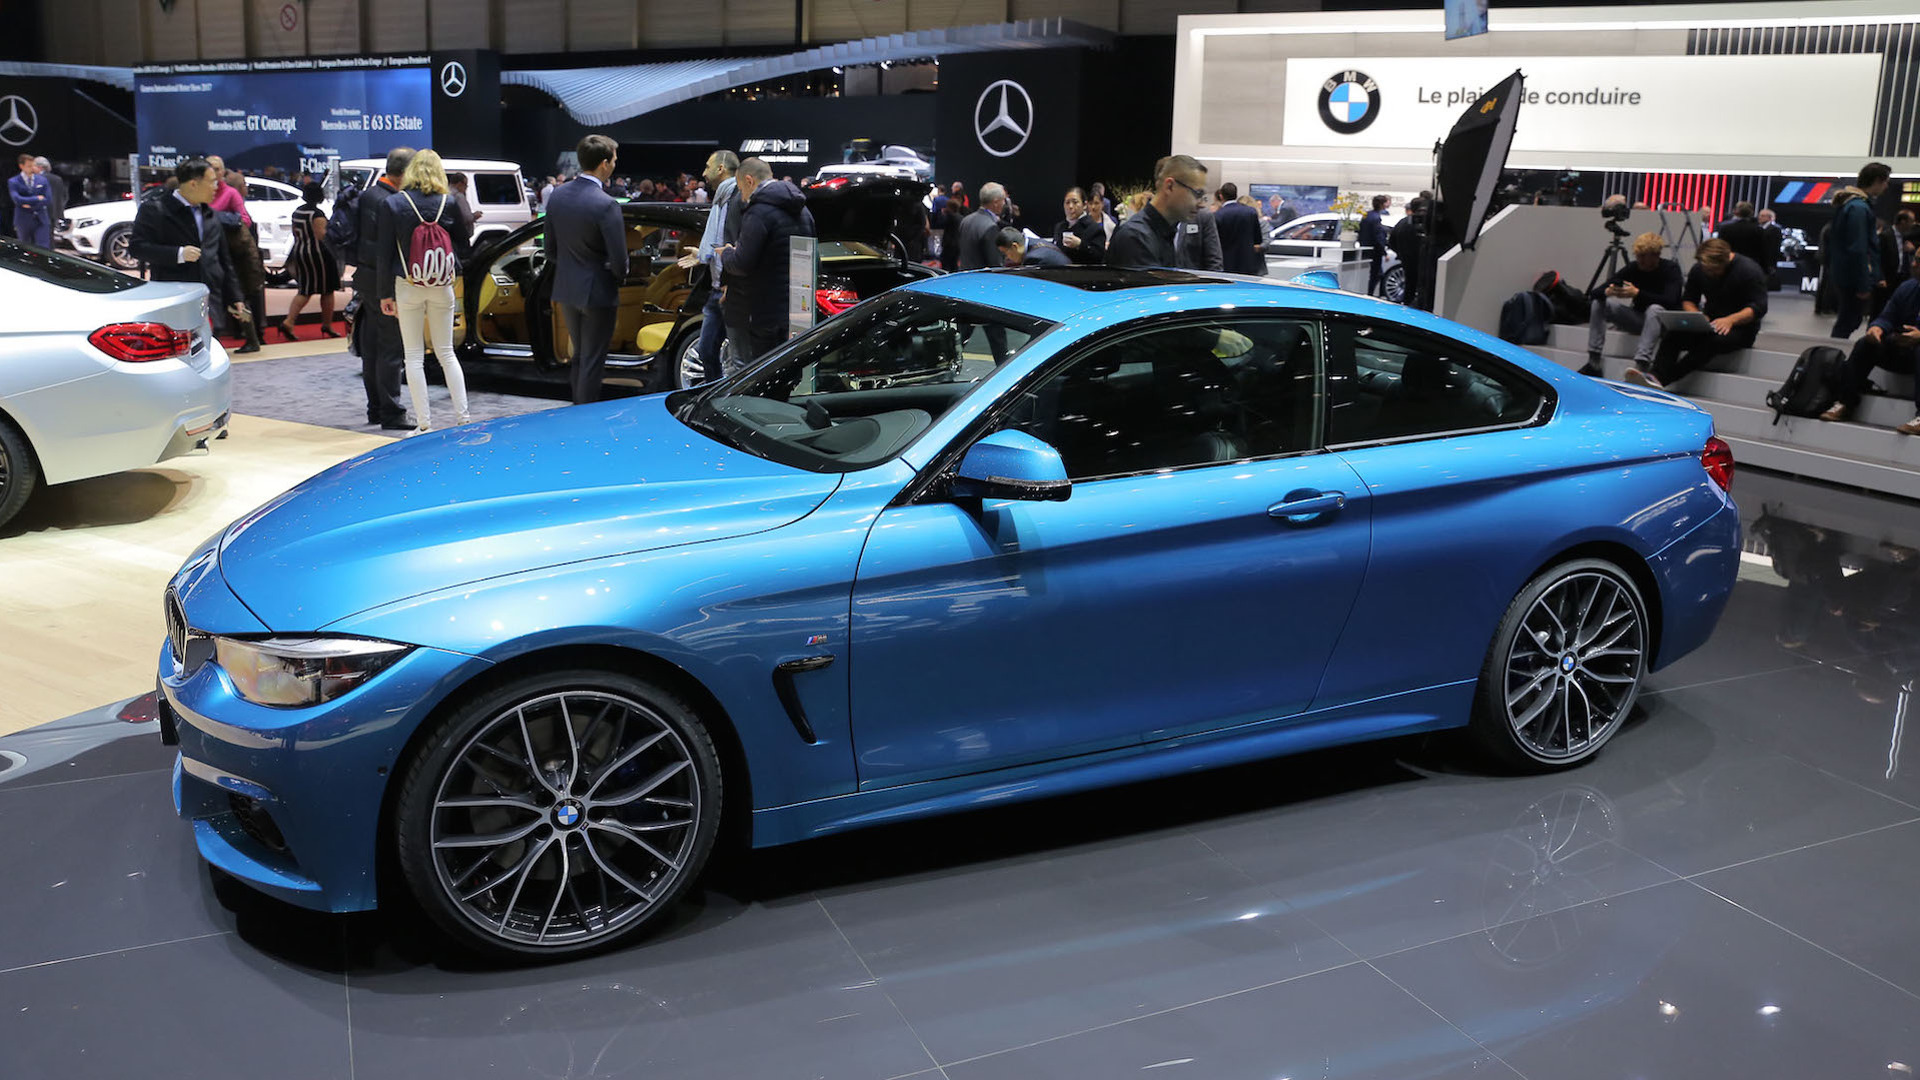 2017 Bmw 4 Series Facelift Arrives In Geneva With Discreet